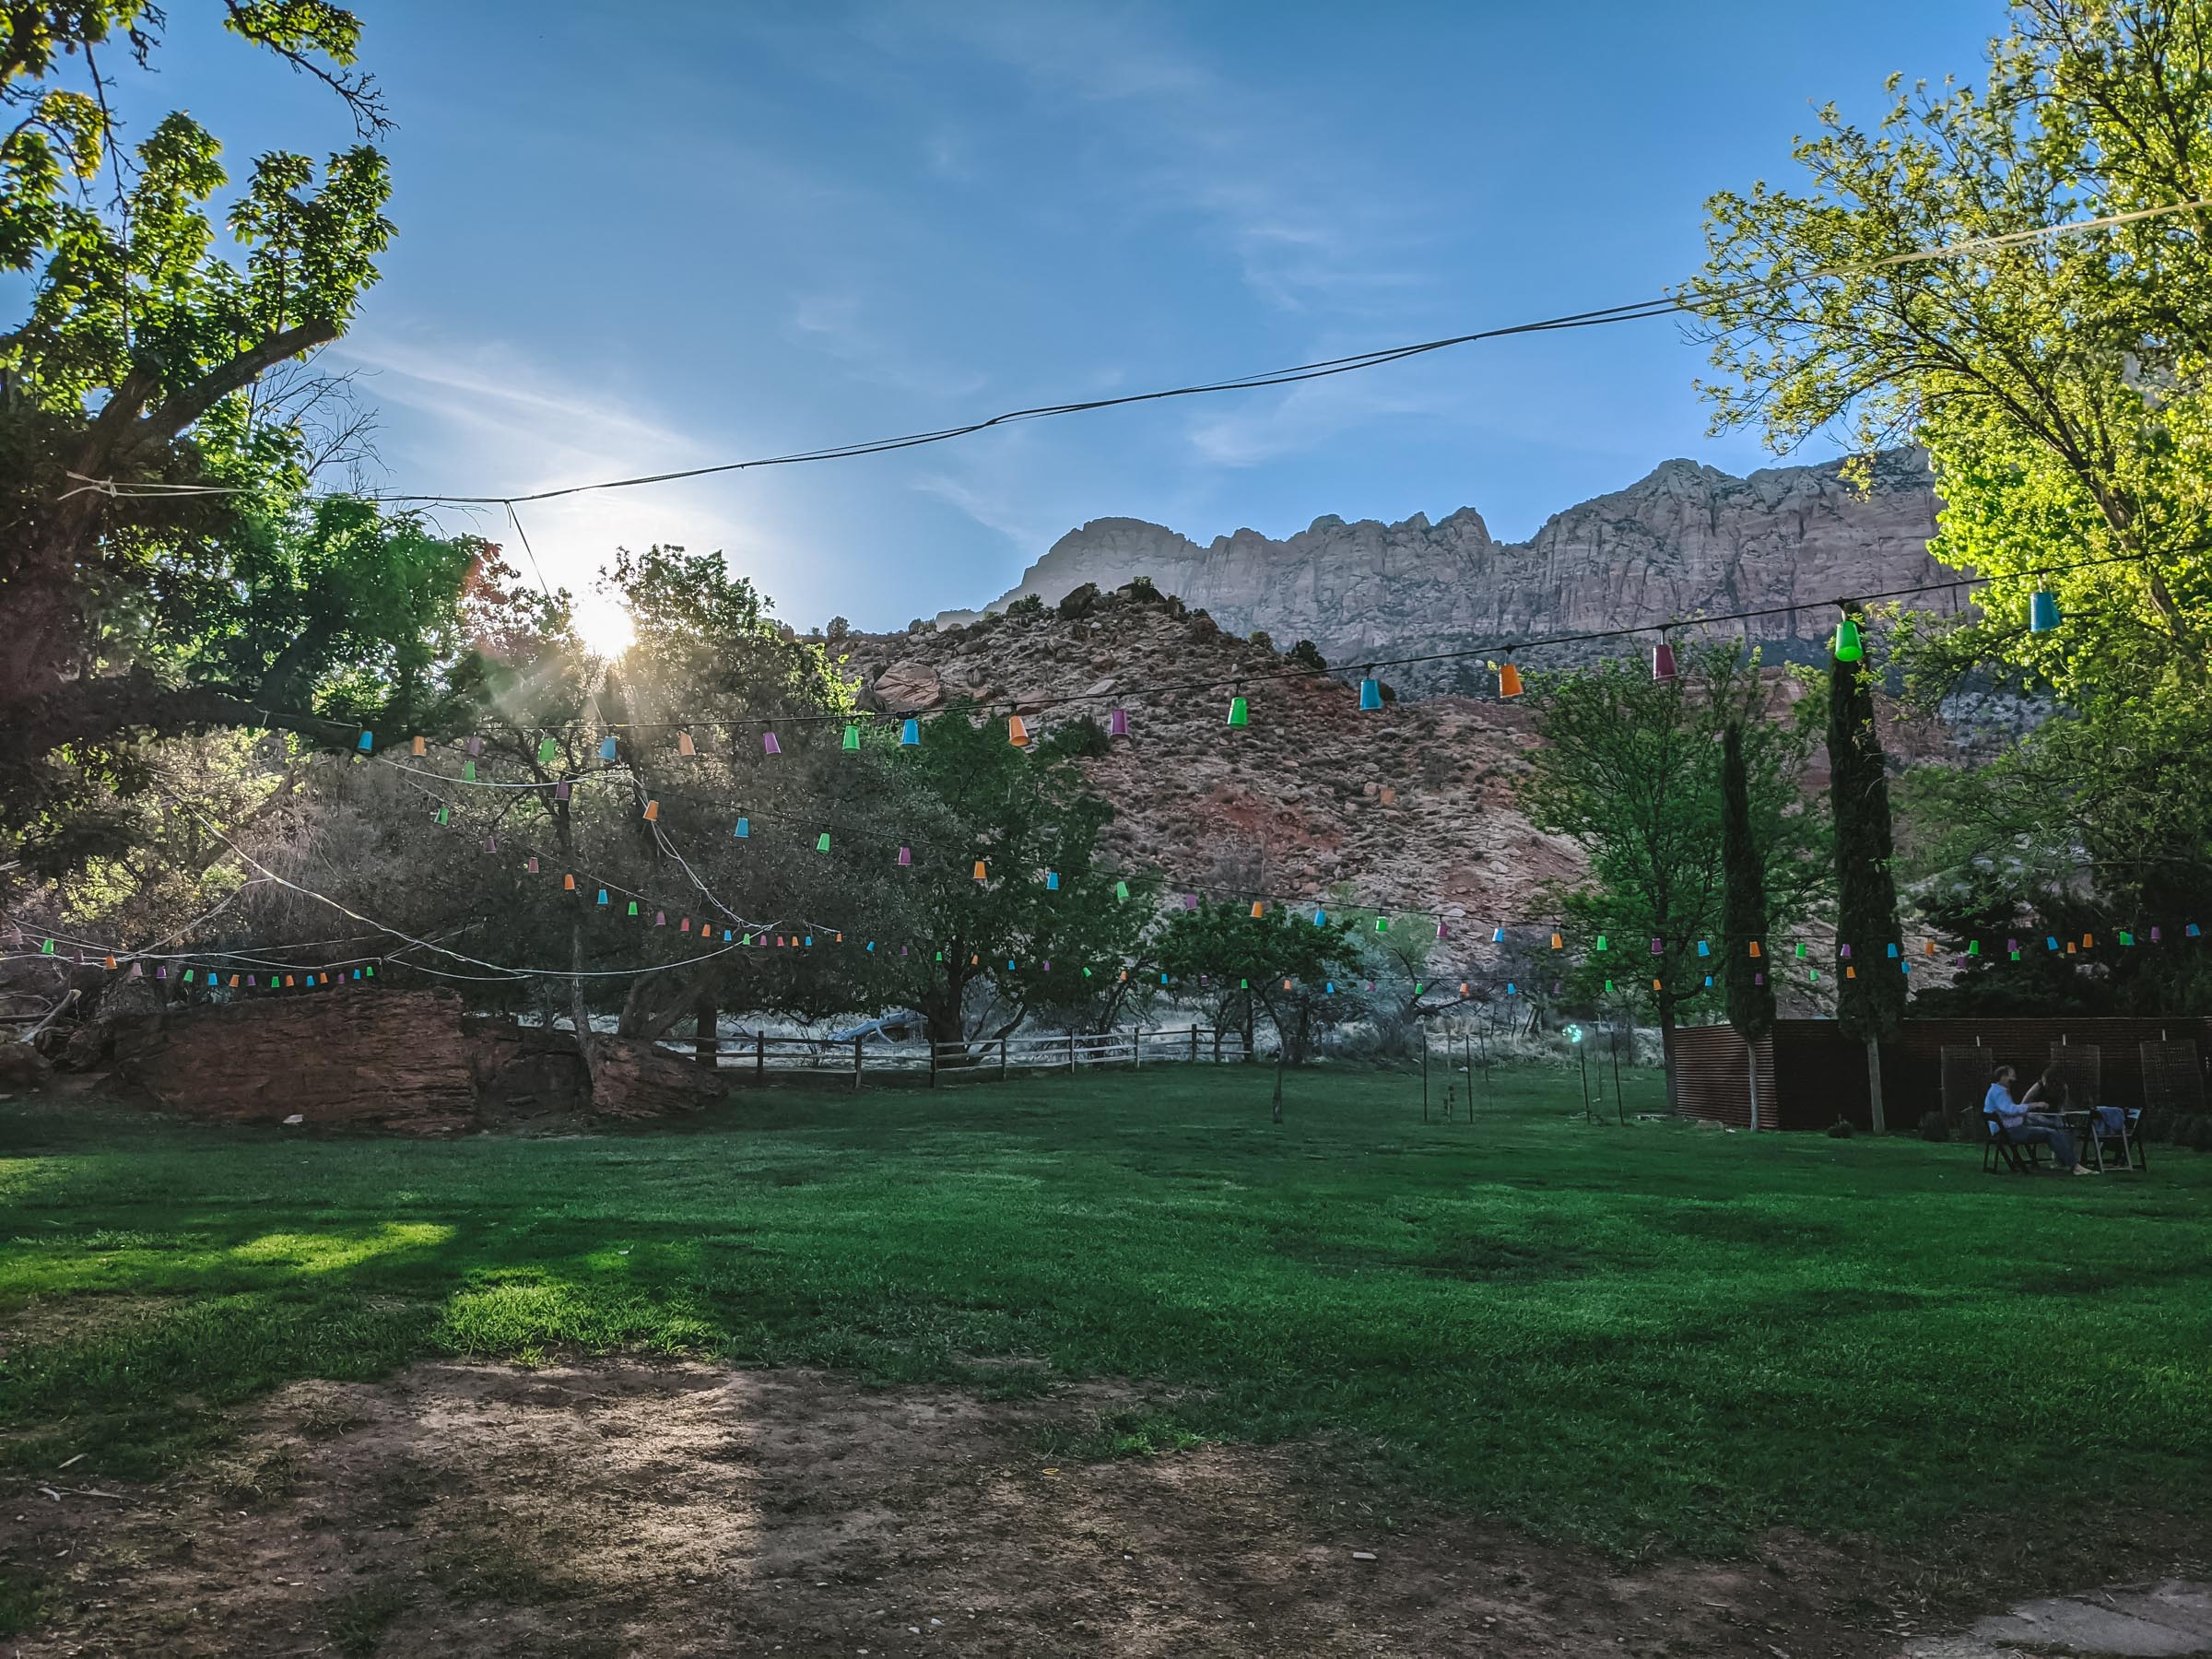 Garden at Bit and Spur in Zion National Park